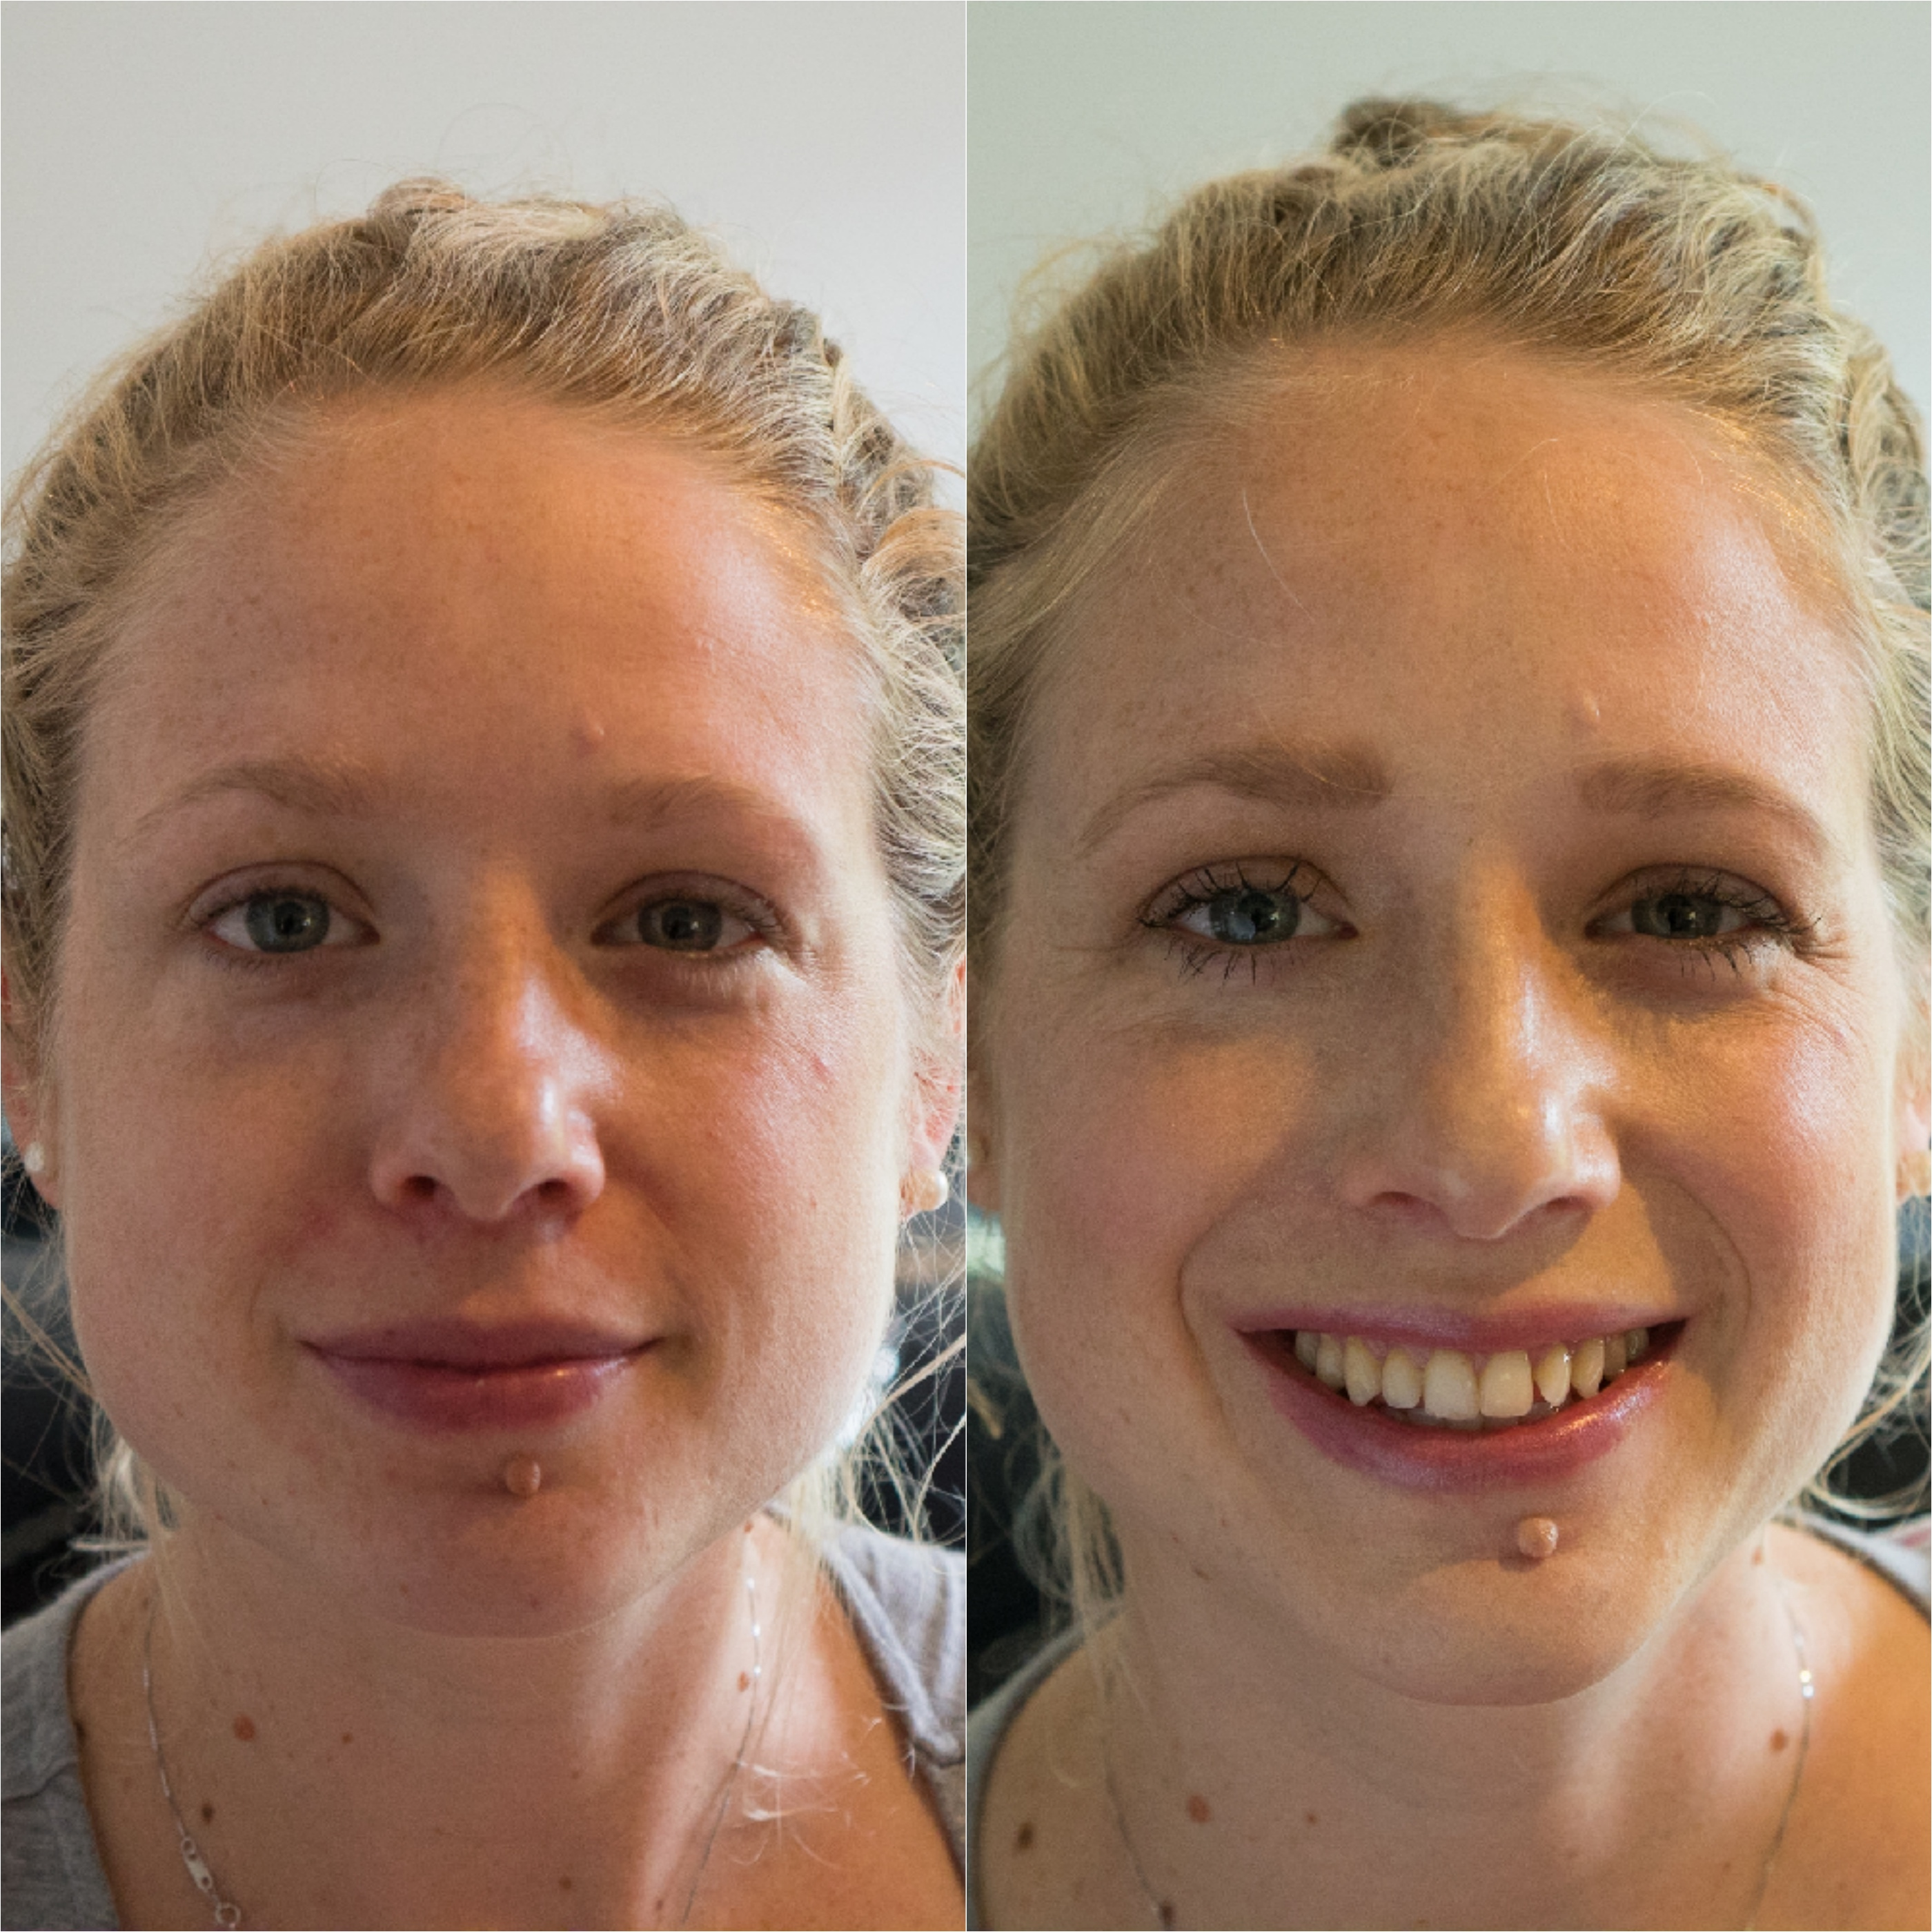 New Mom Before and After with Maskcara Beauty Girl at www.maskcarabeautygirl.com